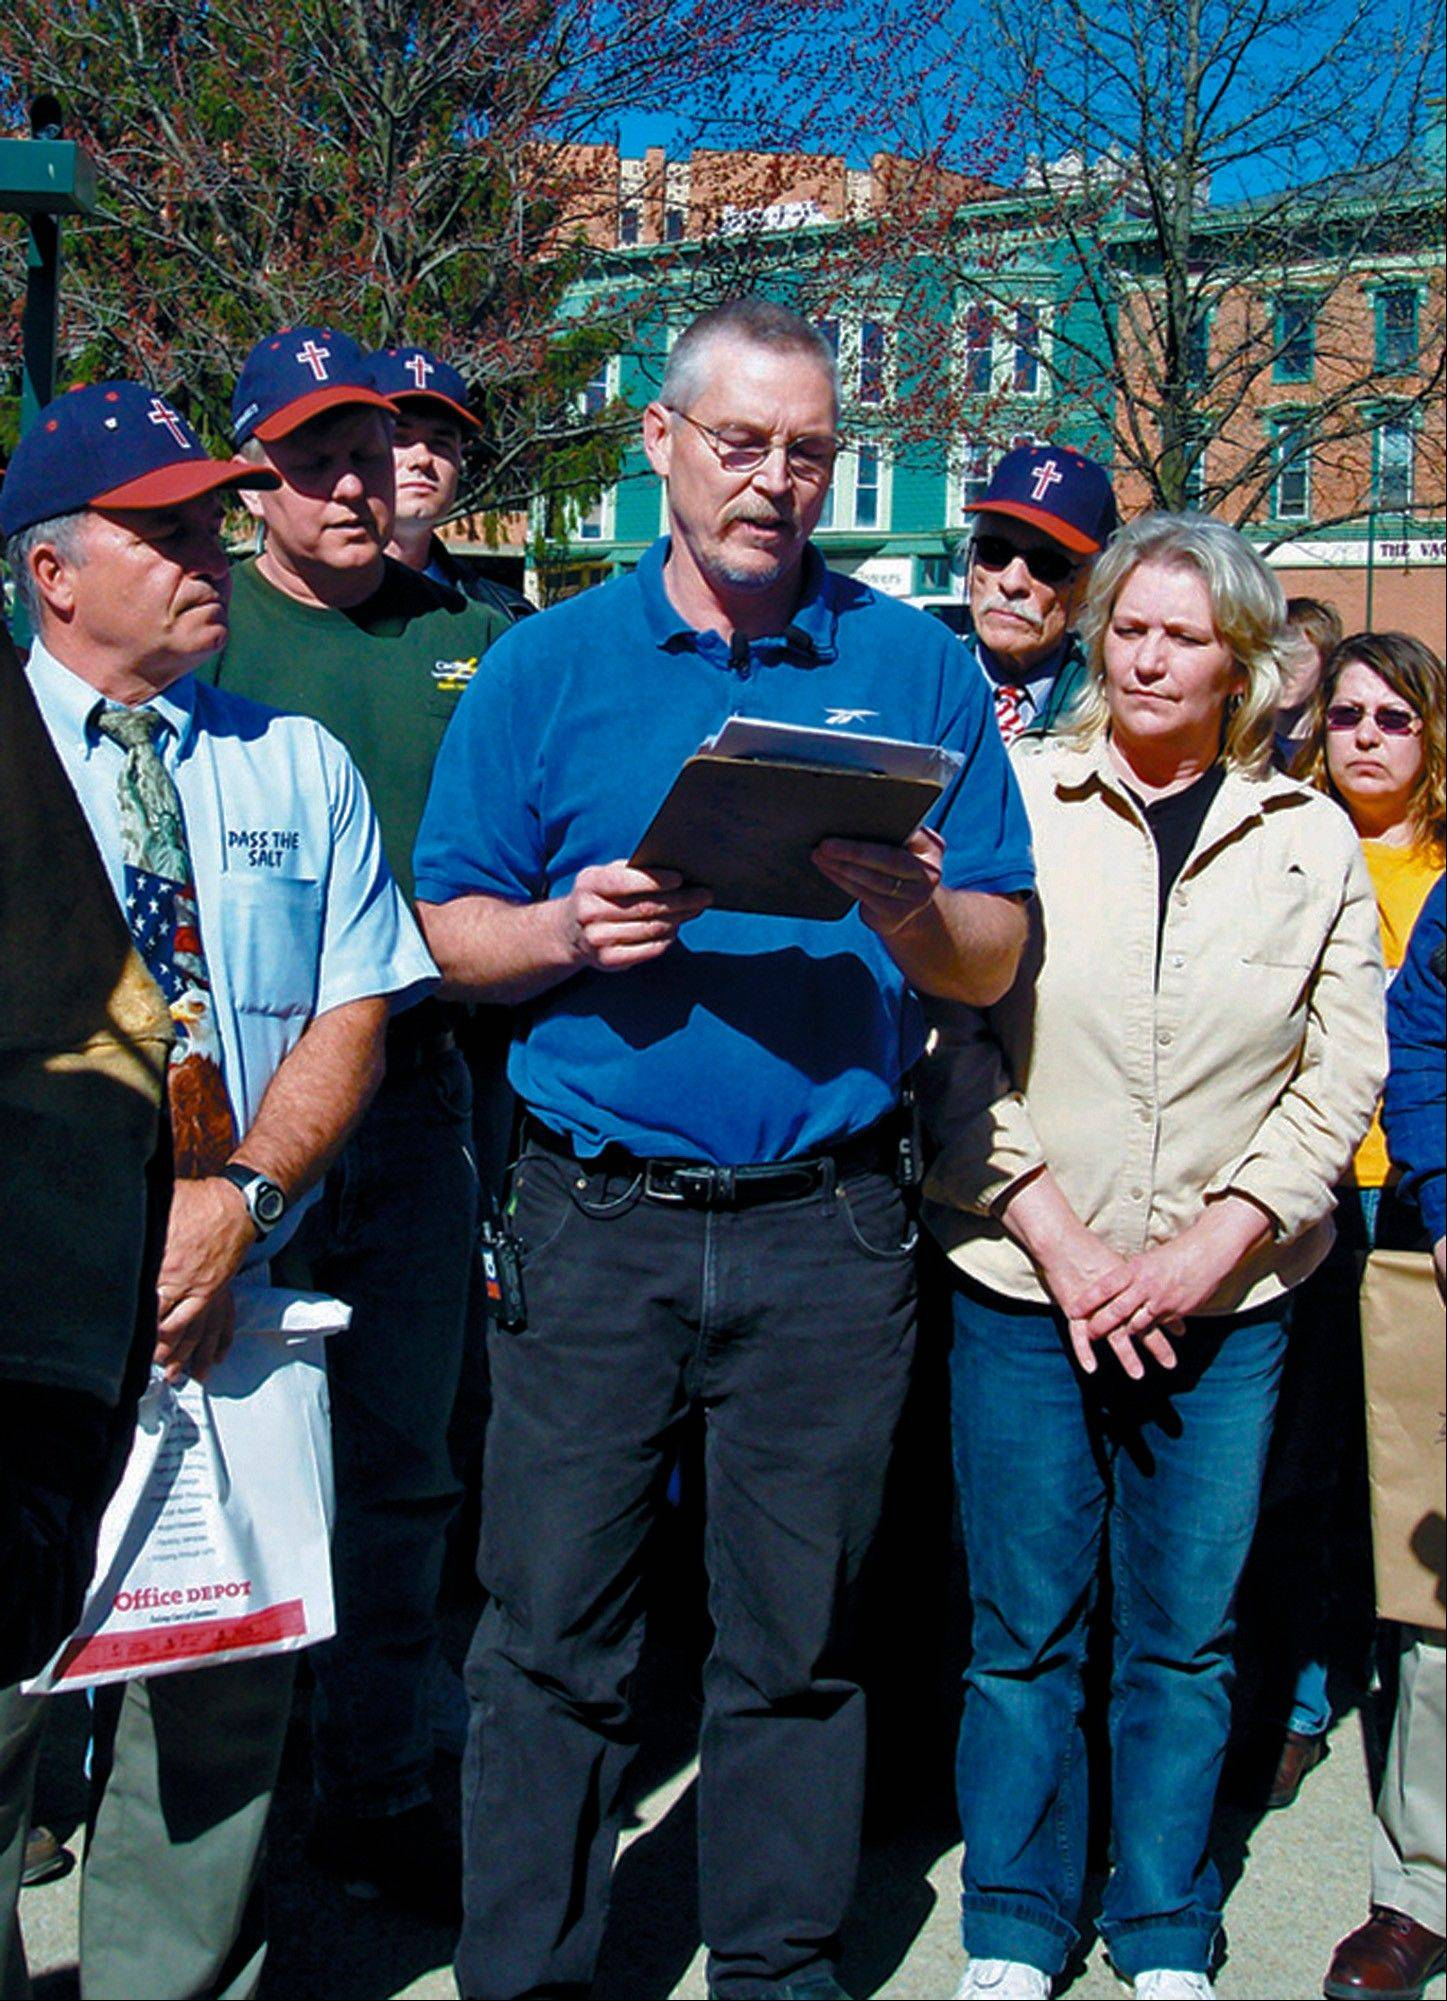 Associated Press/April 16, 2008John Freshwater, center, addresses a crowd on Mount Vernon's public square in Mount Vernon, Ohio.